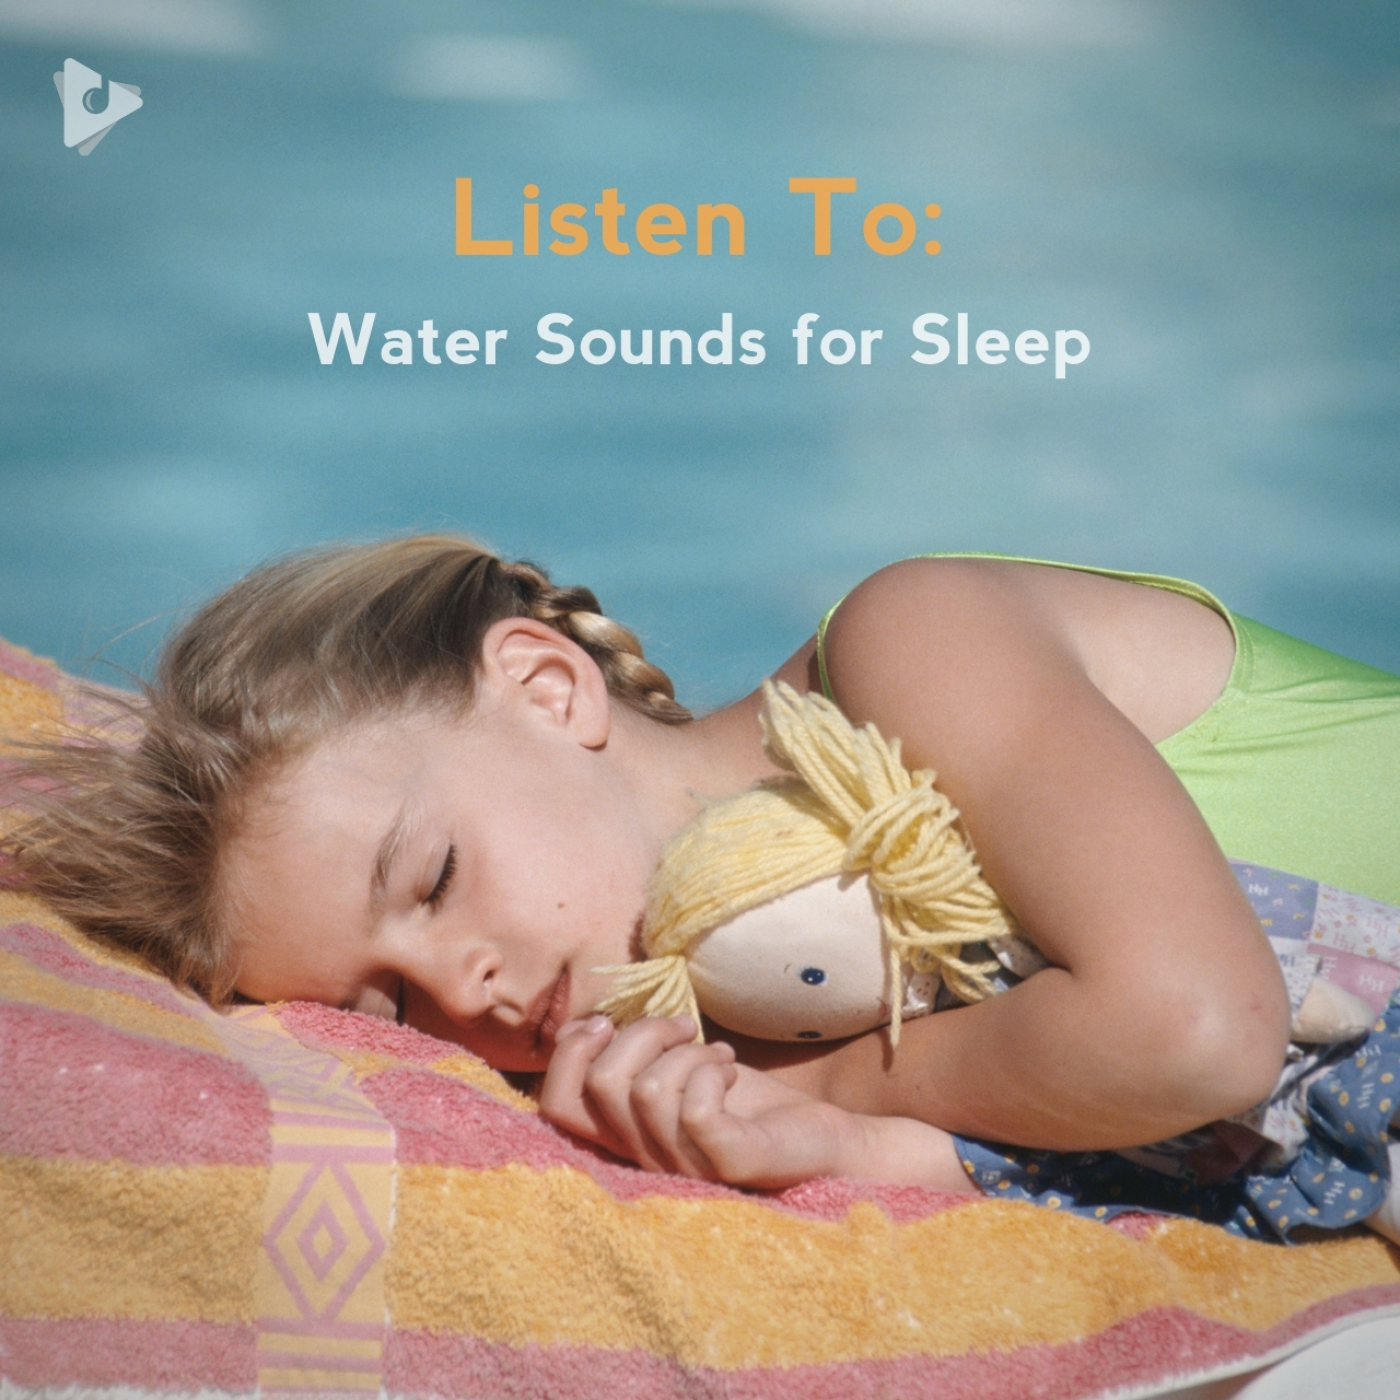 Listen To: Water Sounds for Sleep